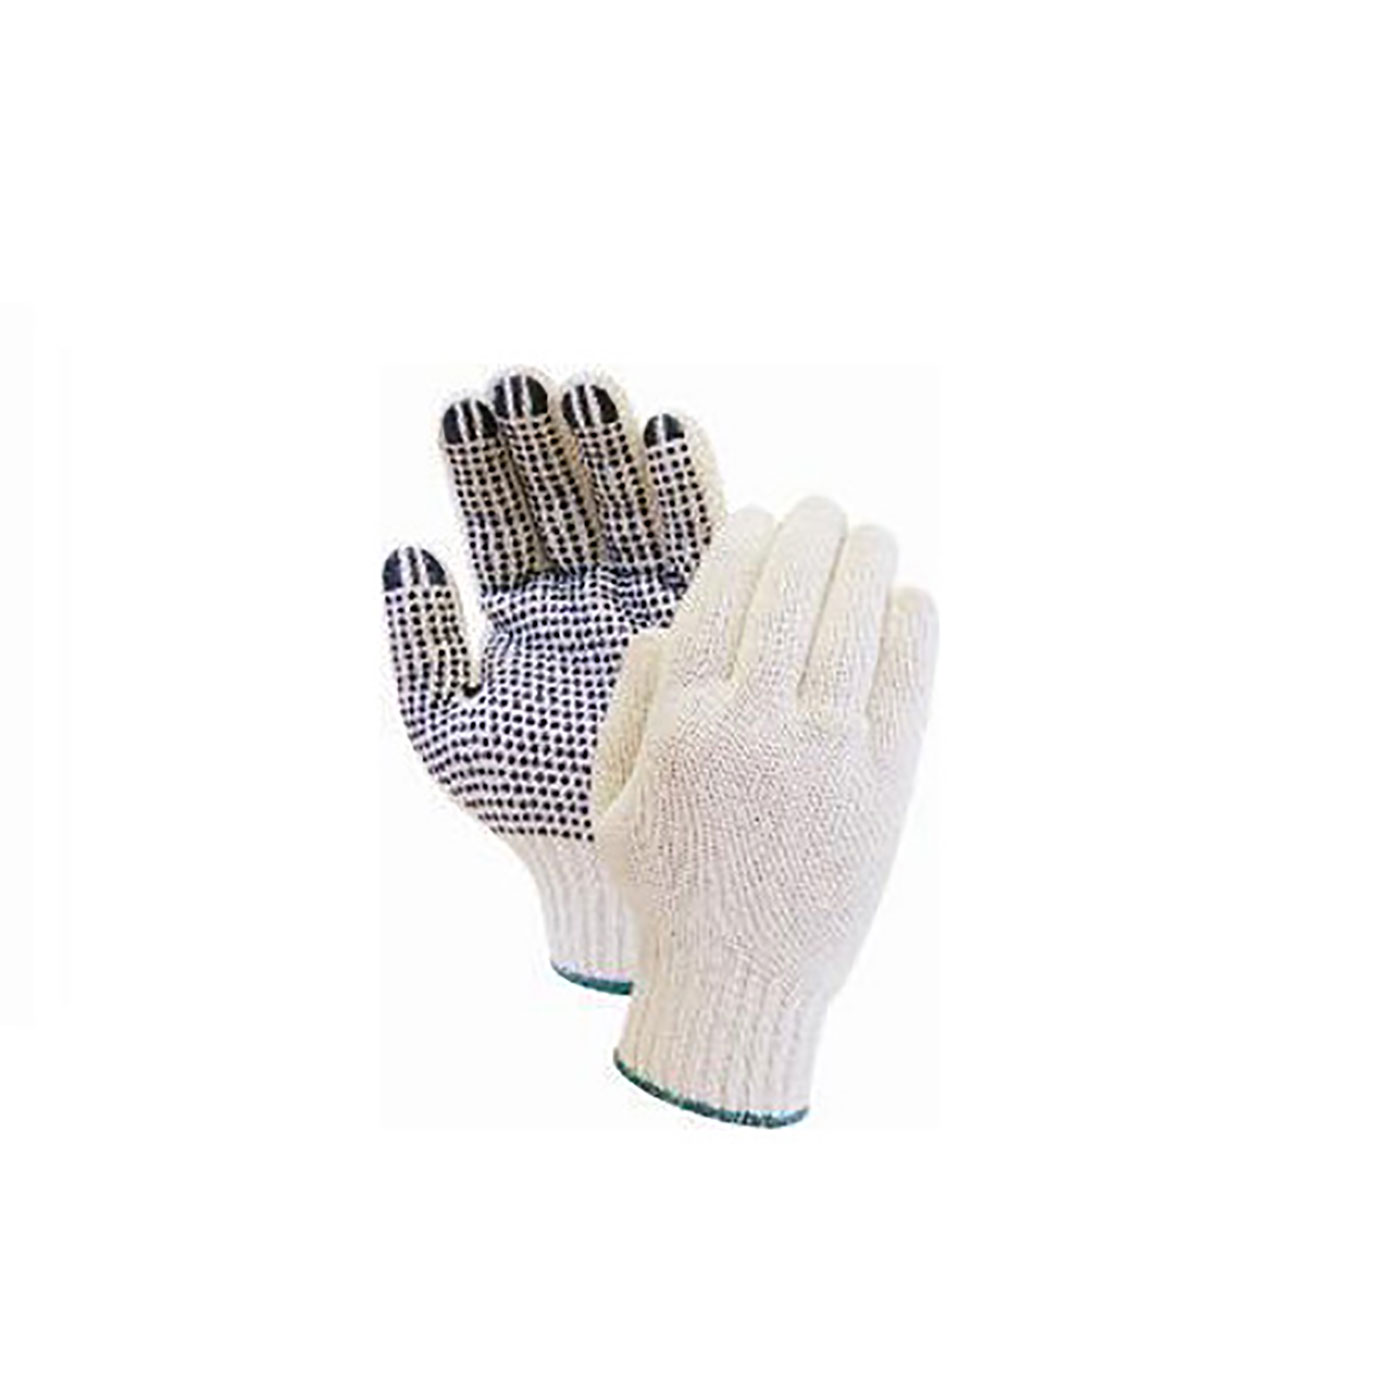 Workhorse Dotted Palm Glove